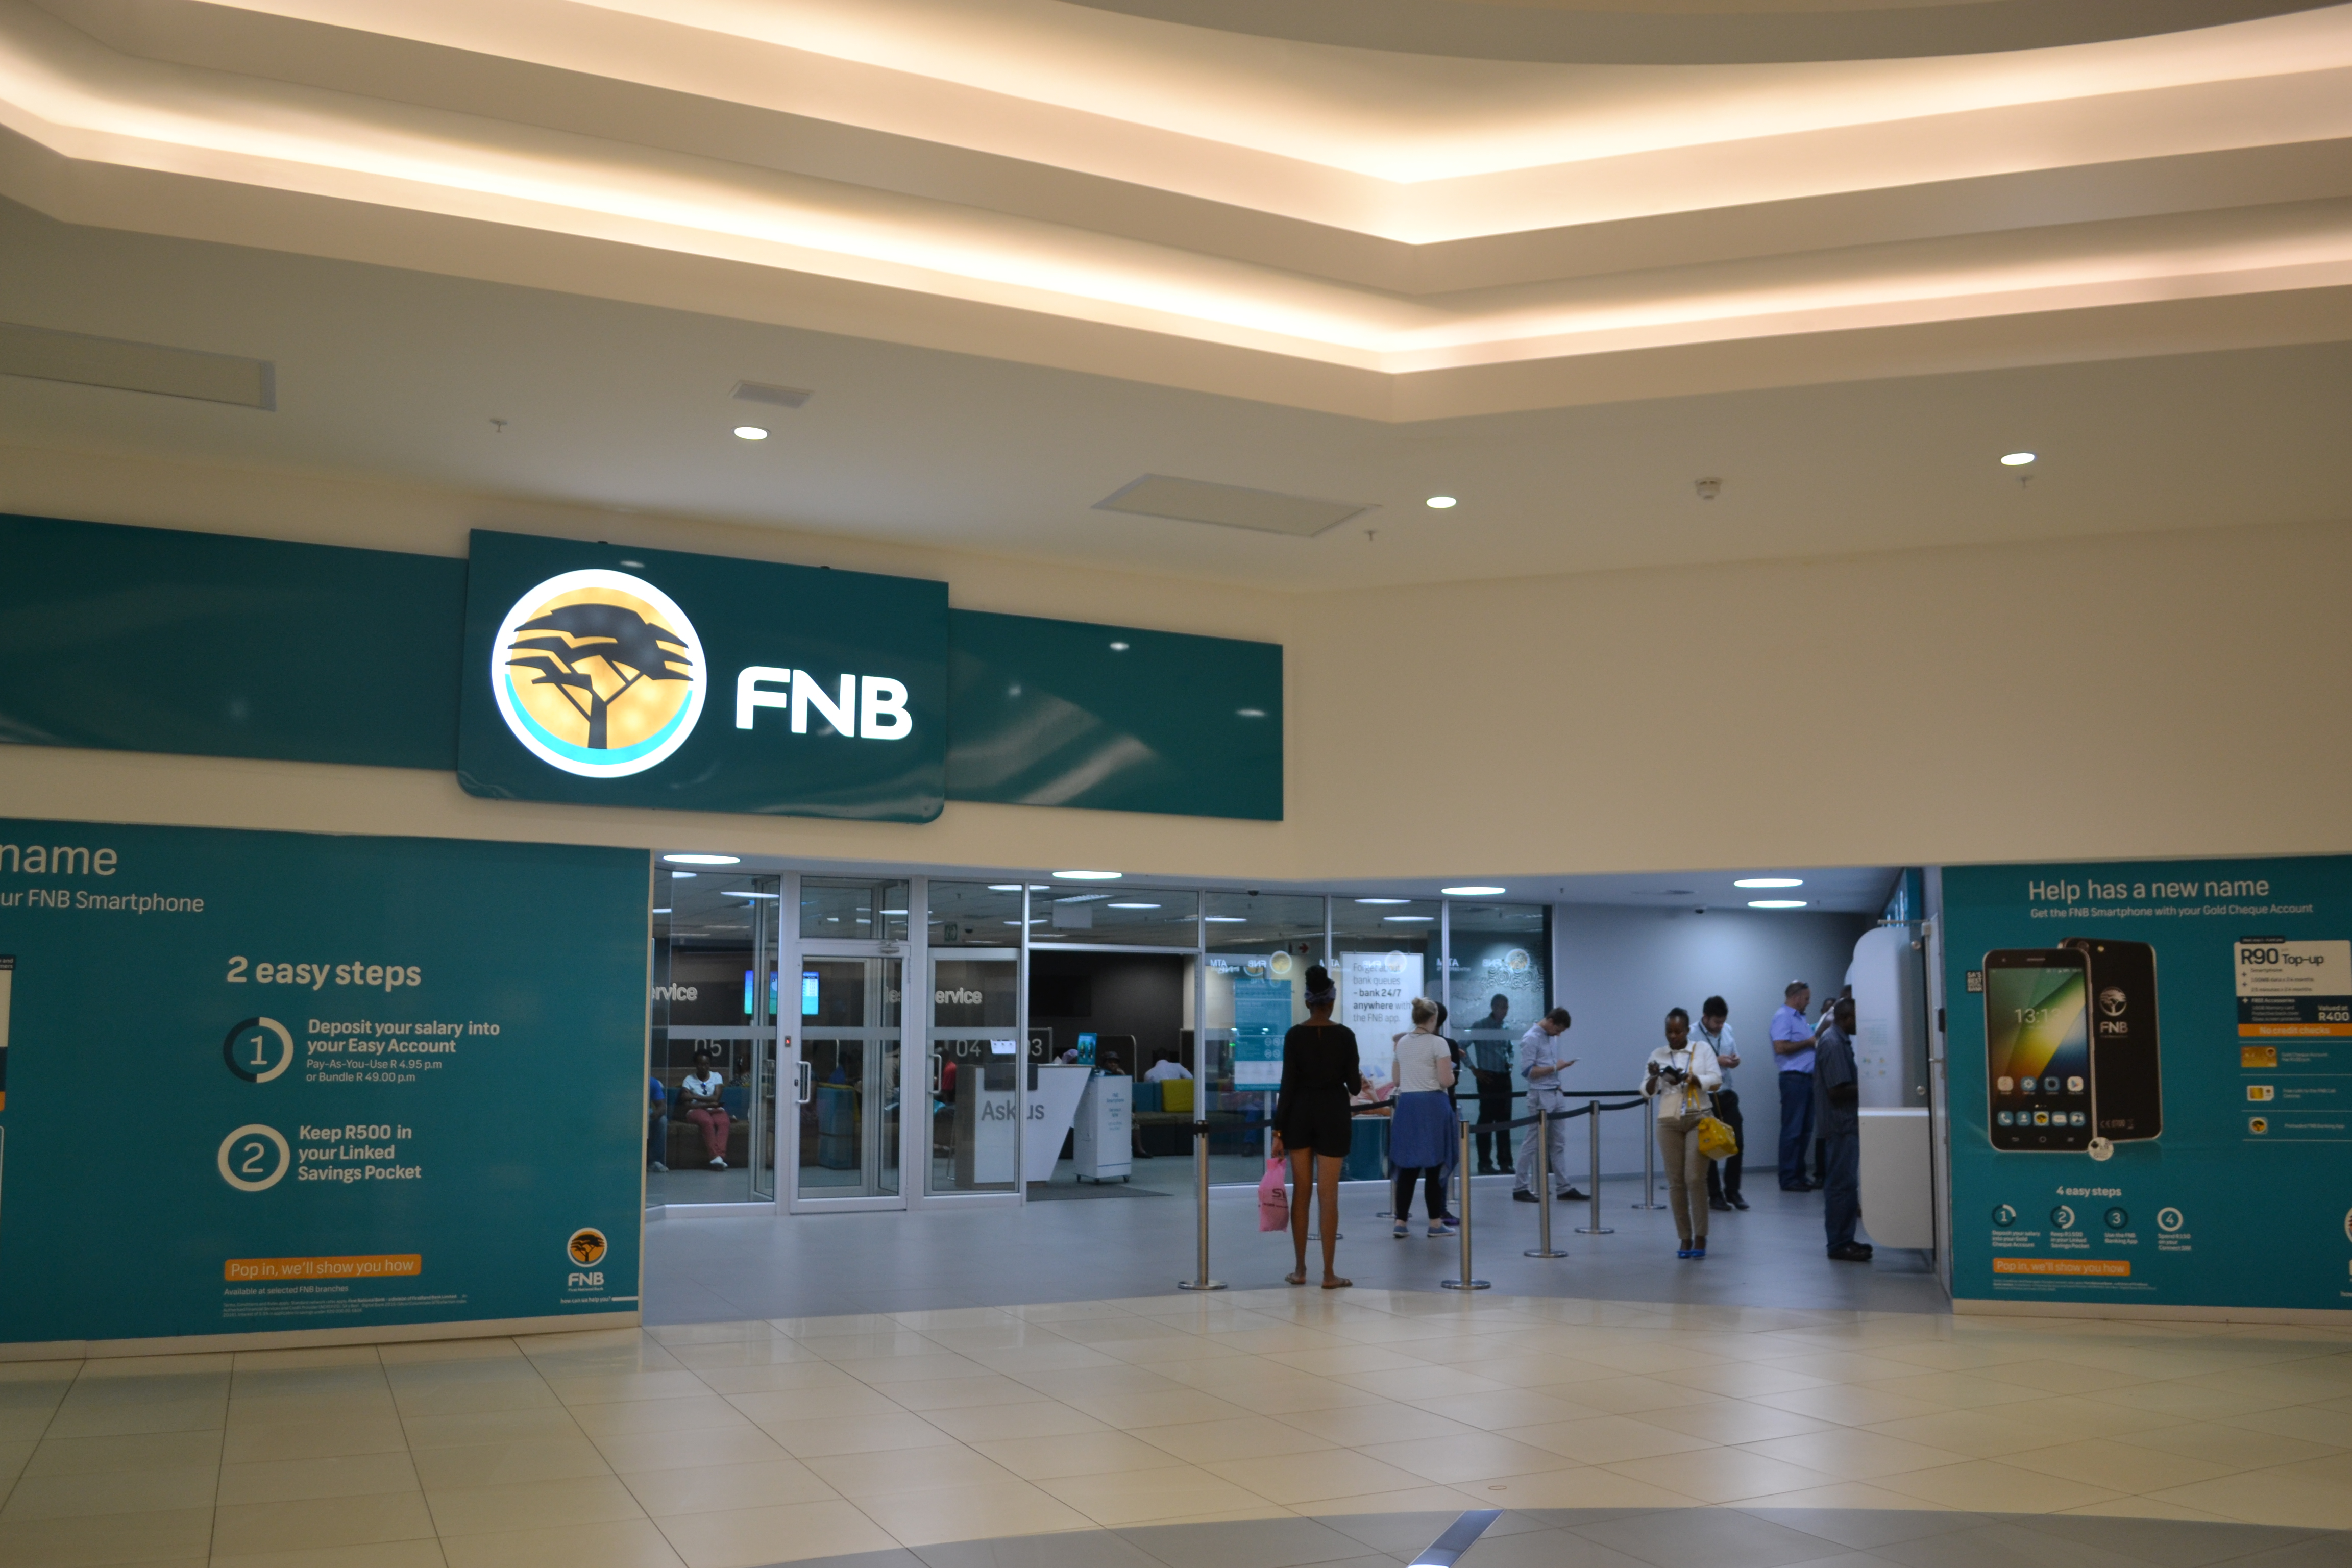 FNB retains its position as Africa's most valuable banking